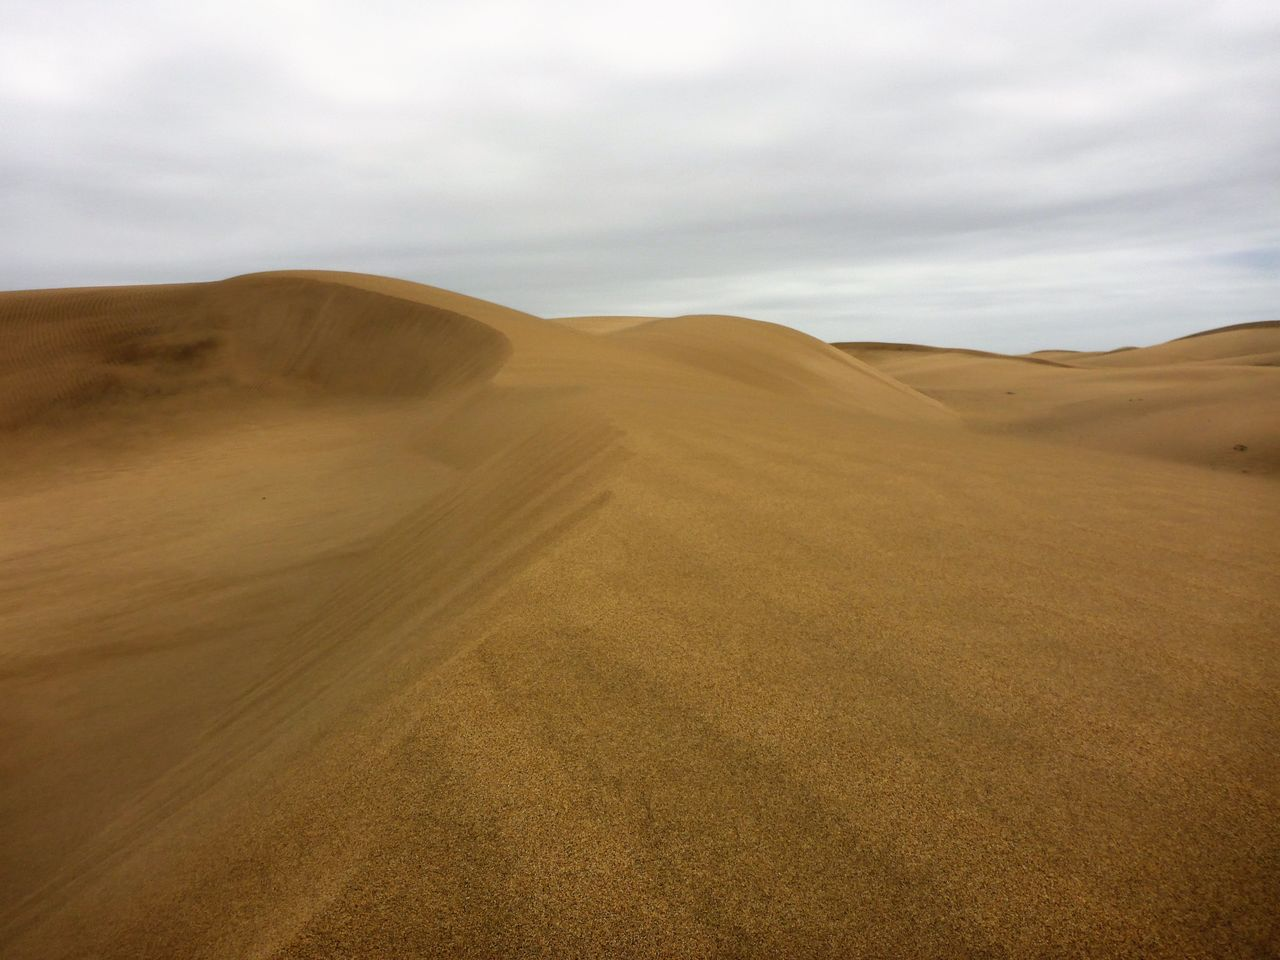 scenics - nature, landscape, environment, sky, cloud - sky, desert, land, tranquility, beauty in nature, tranquil scene, sand, non-urban scene, climate, arid climate, remote, sand dune, horizon over land, day, no people, nature, atmospheric, rolling landscape